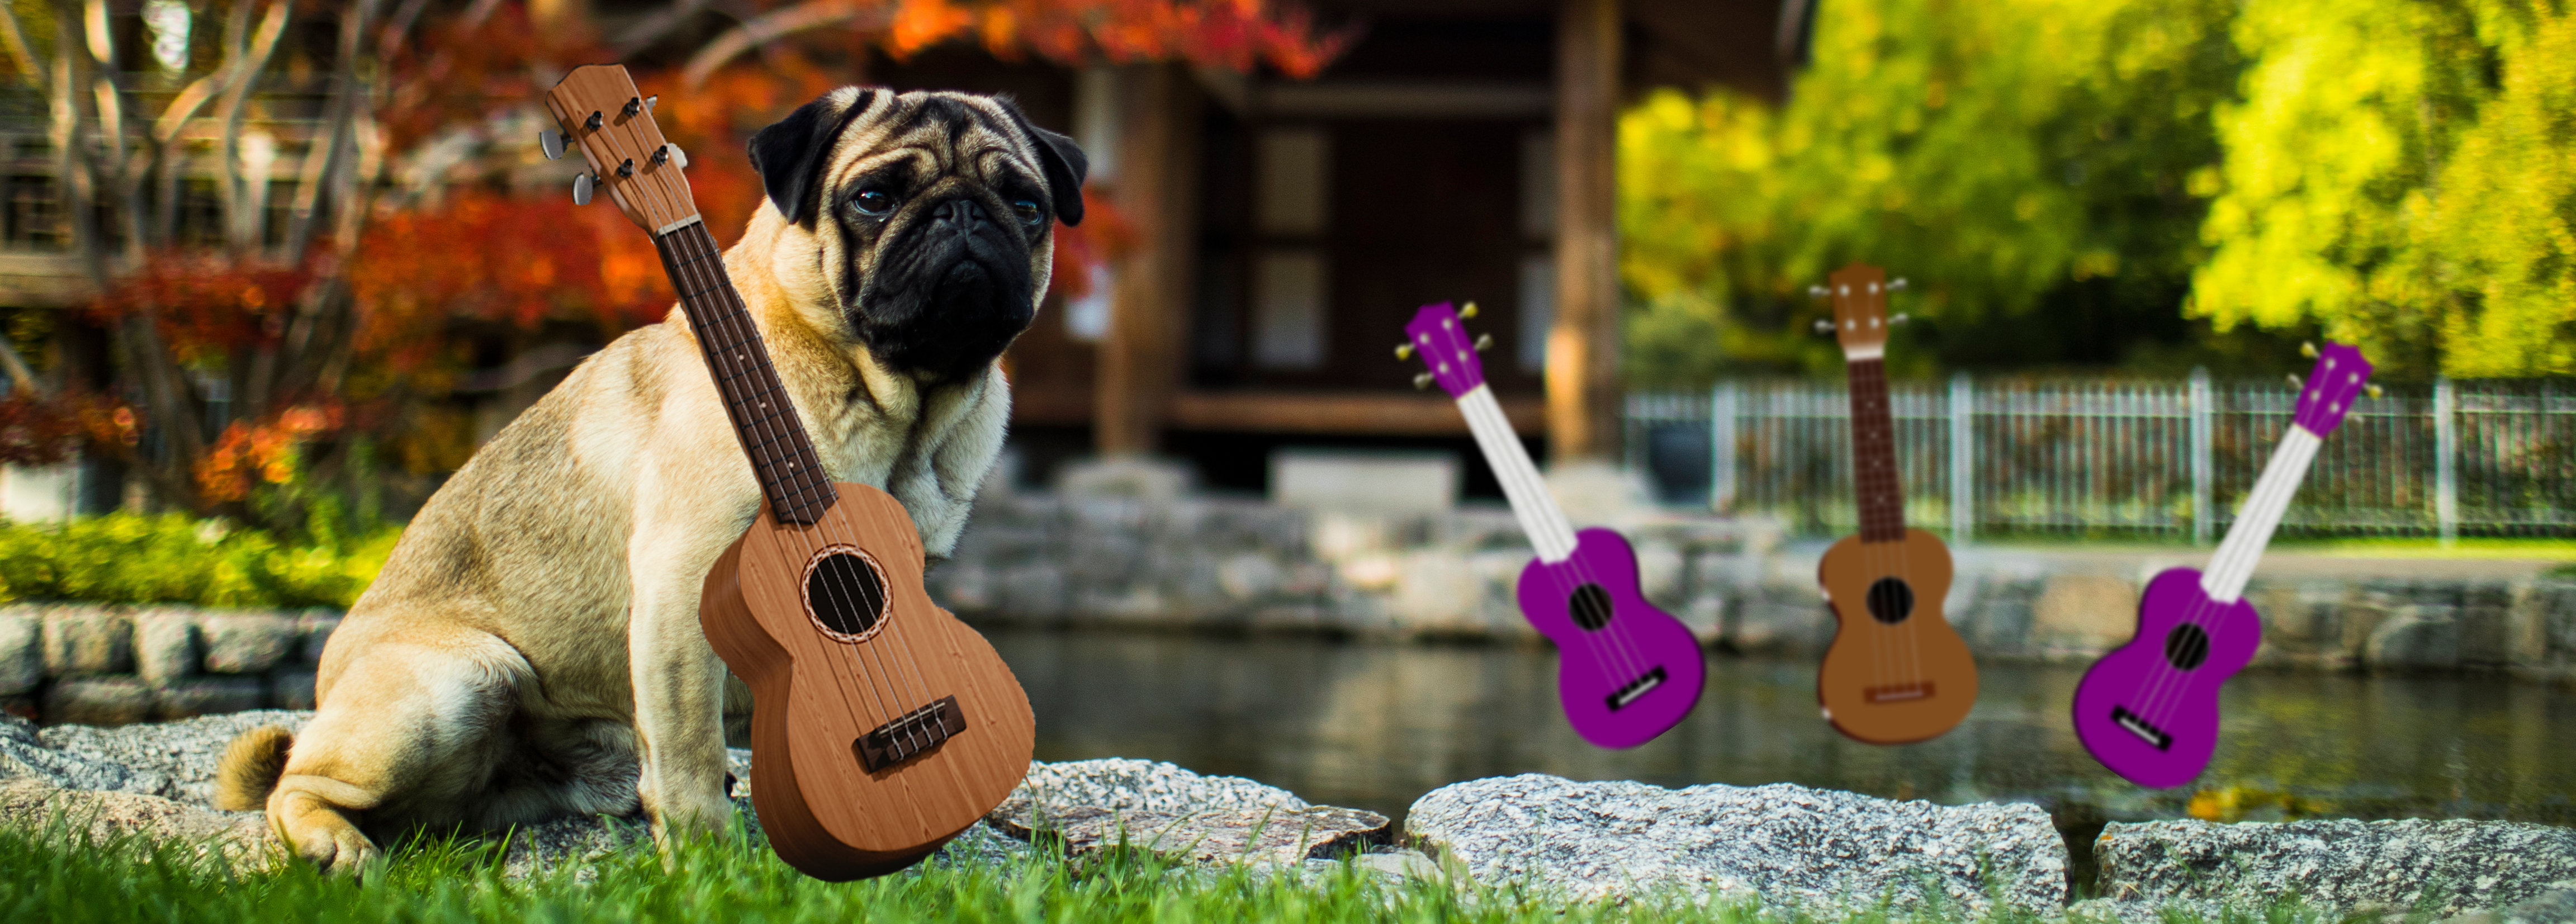 A pug playing a ukulele in this picture